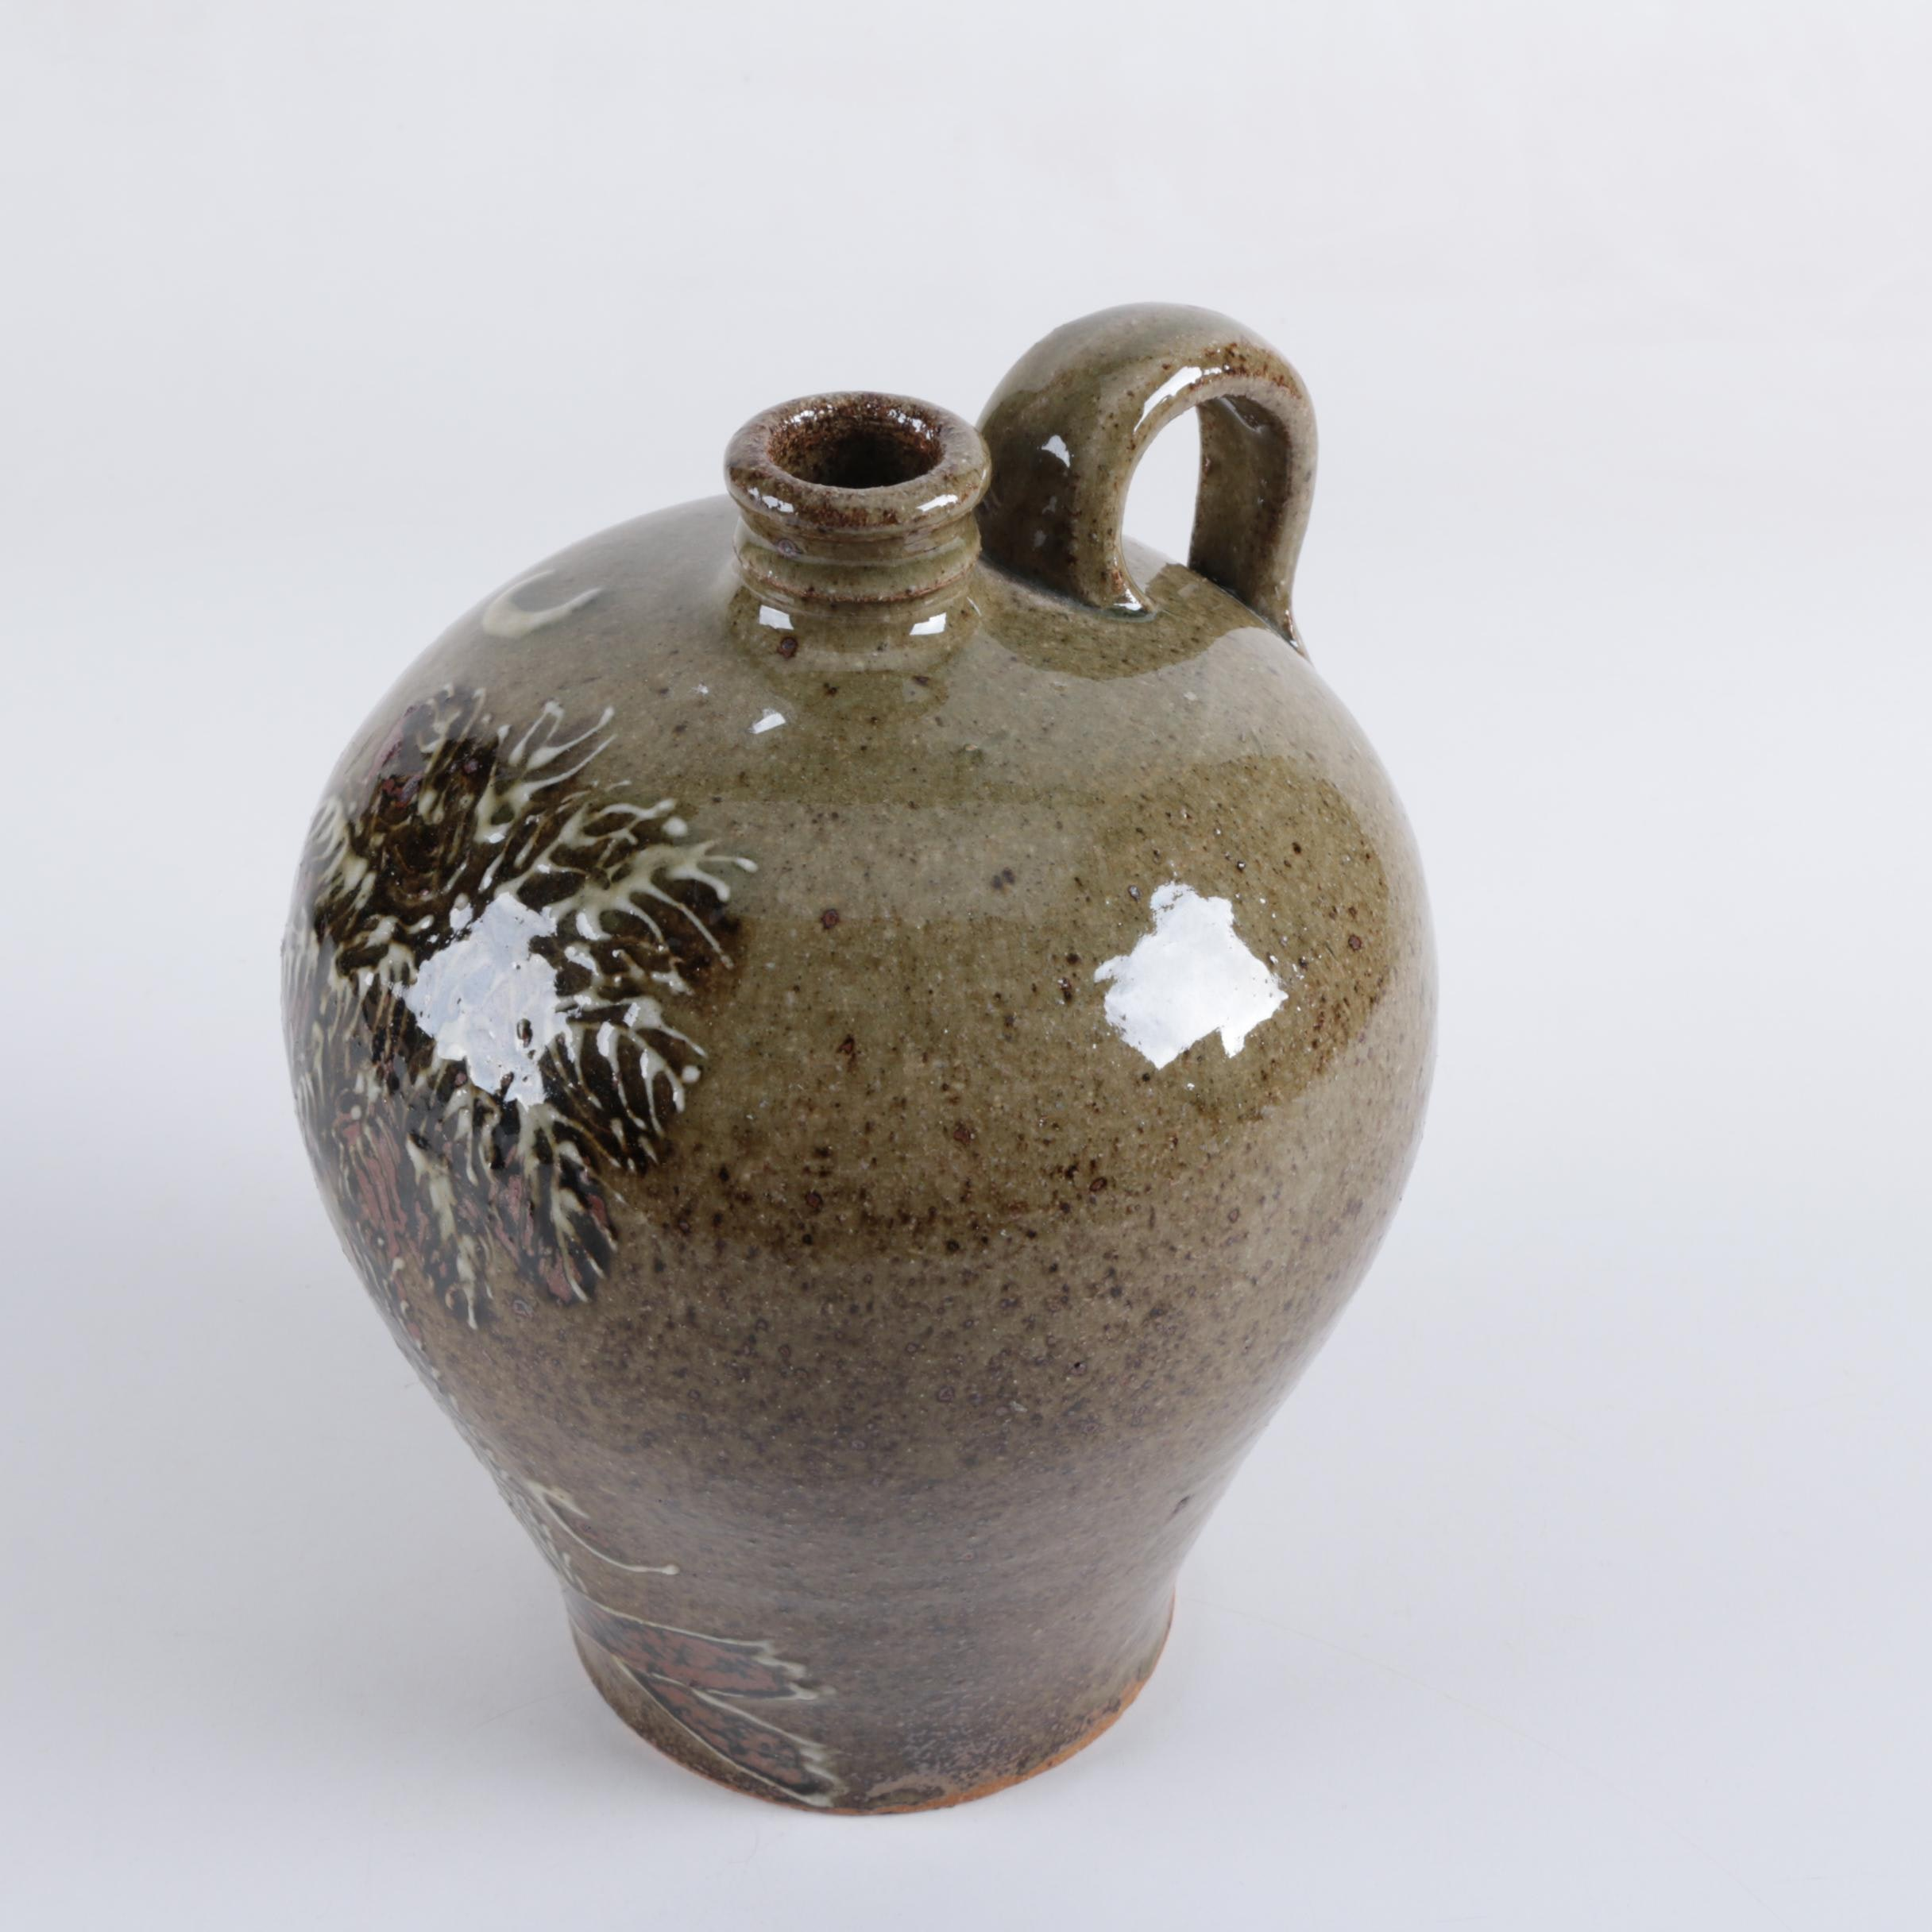 Hand Crafted Pottery Jug by Edgefield Pottery Artist, Steve Ferrell